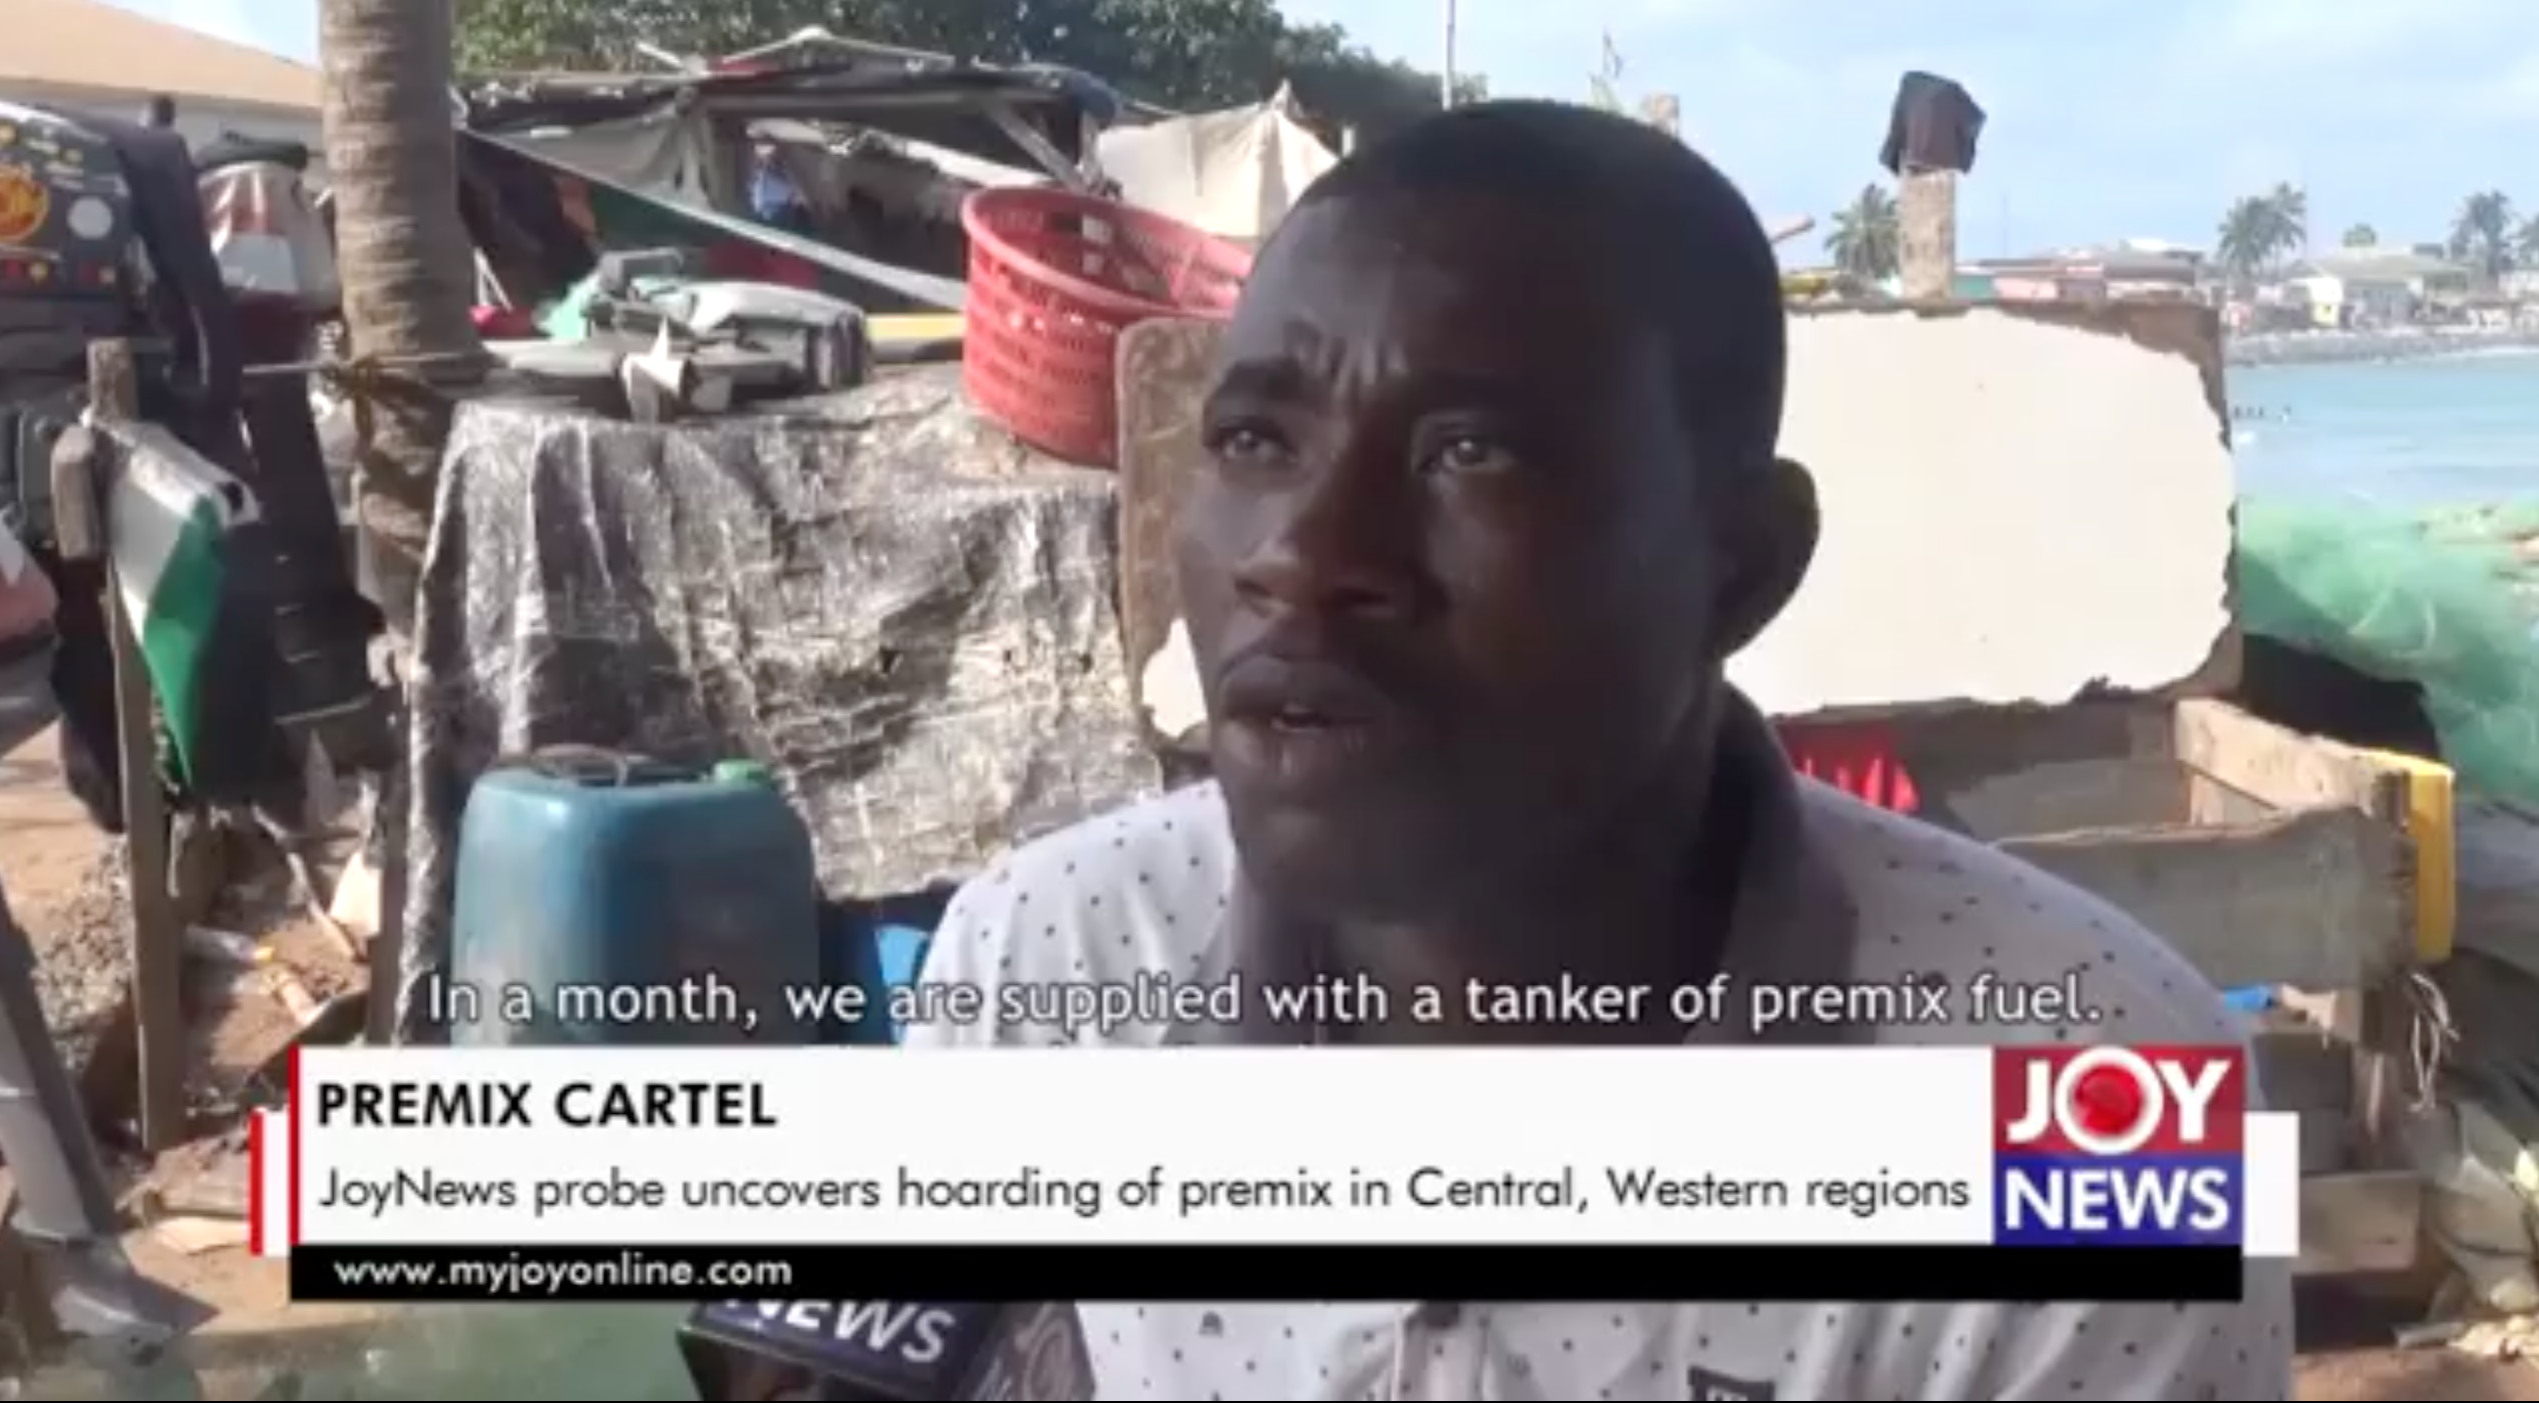 PREMIX CARTEL - JOY NEWS INVESTIGATIONS UNCOVER HOARDING IN THE CENTRAL & WESTERN REGIONS